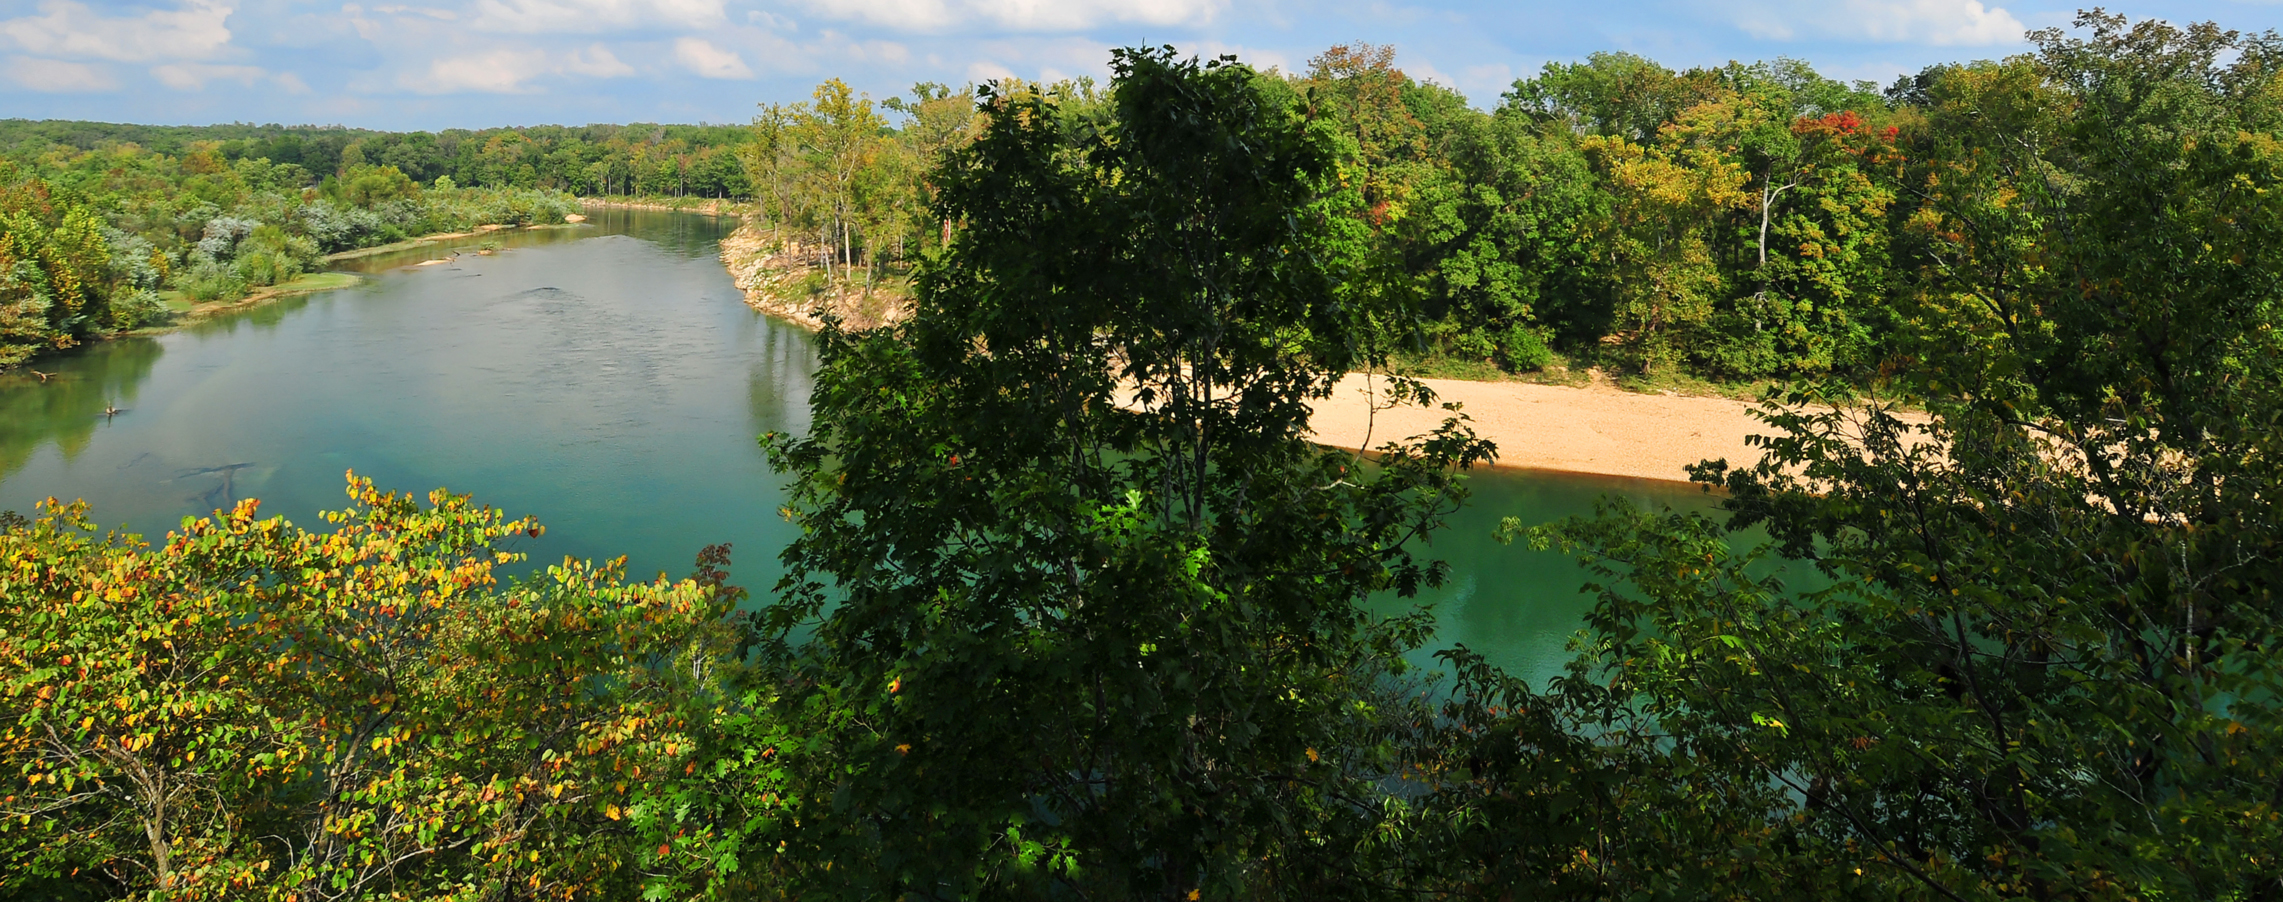 Lake Ozark Missouri >> File:Current River, Missouri, panorama.jpg - Wikimedia Commons